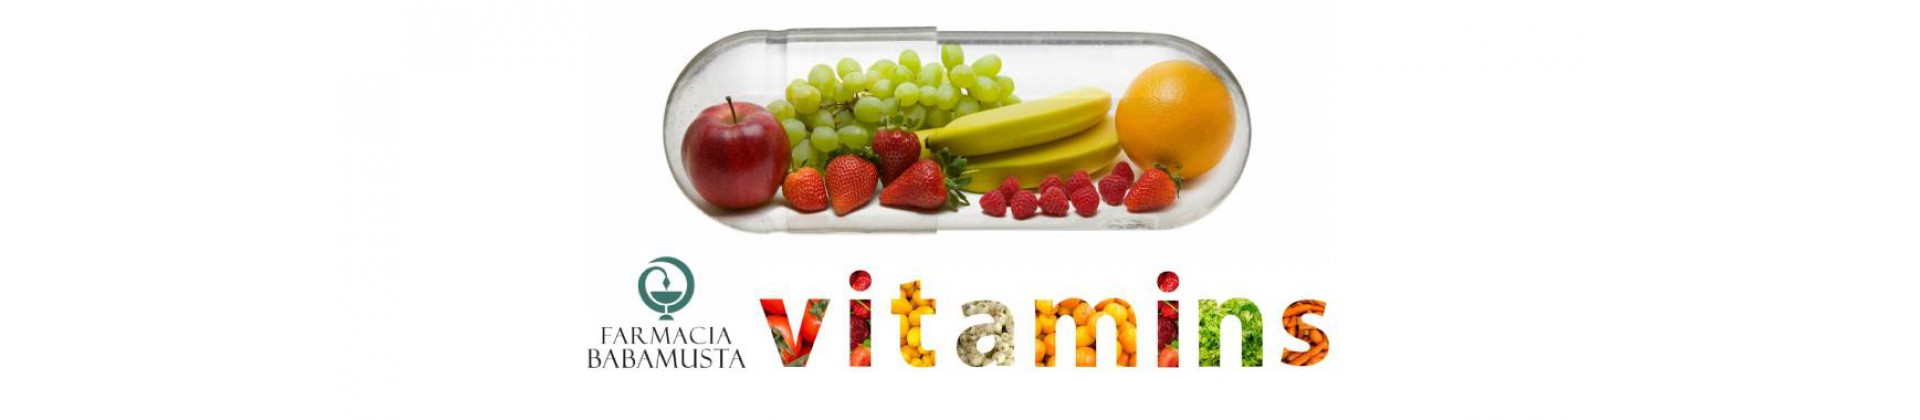 Vitamins by farmacia babamusta